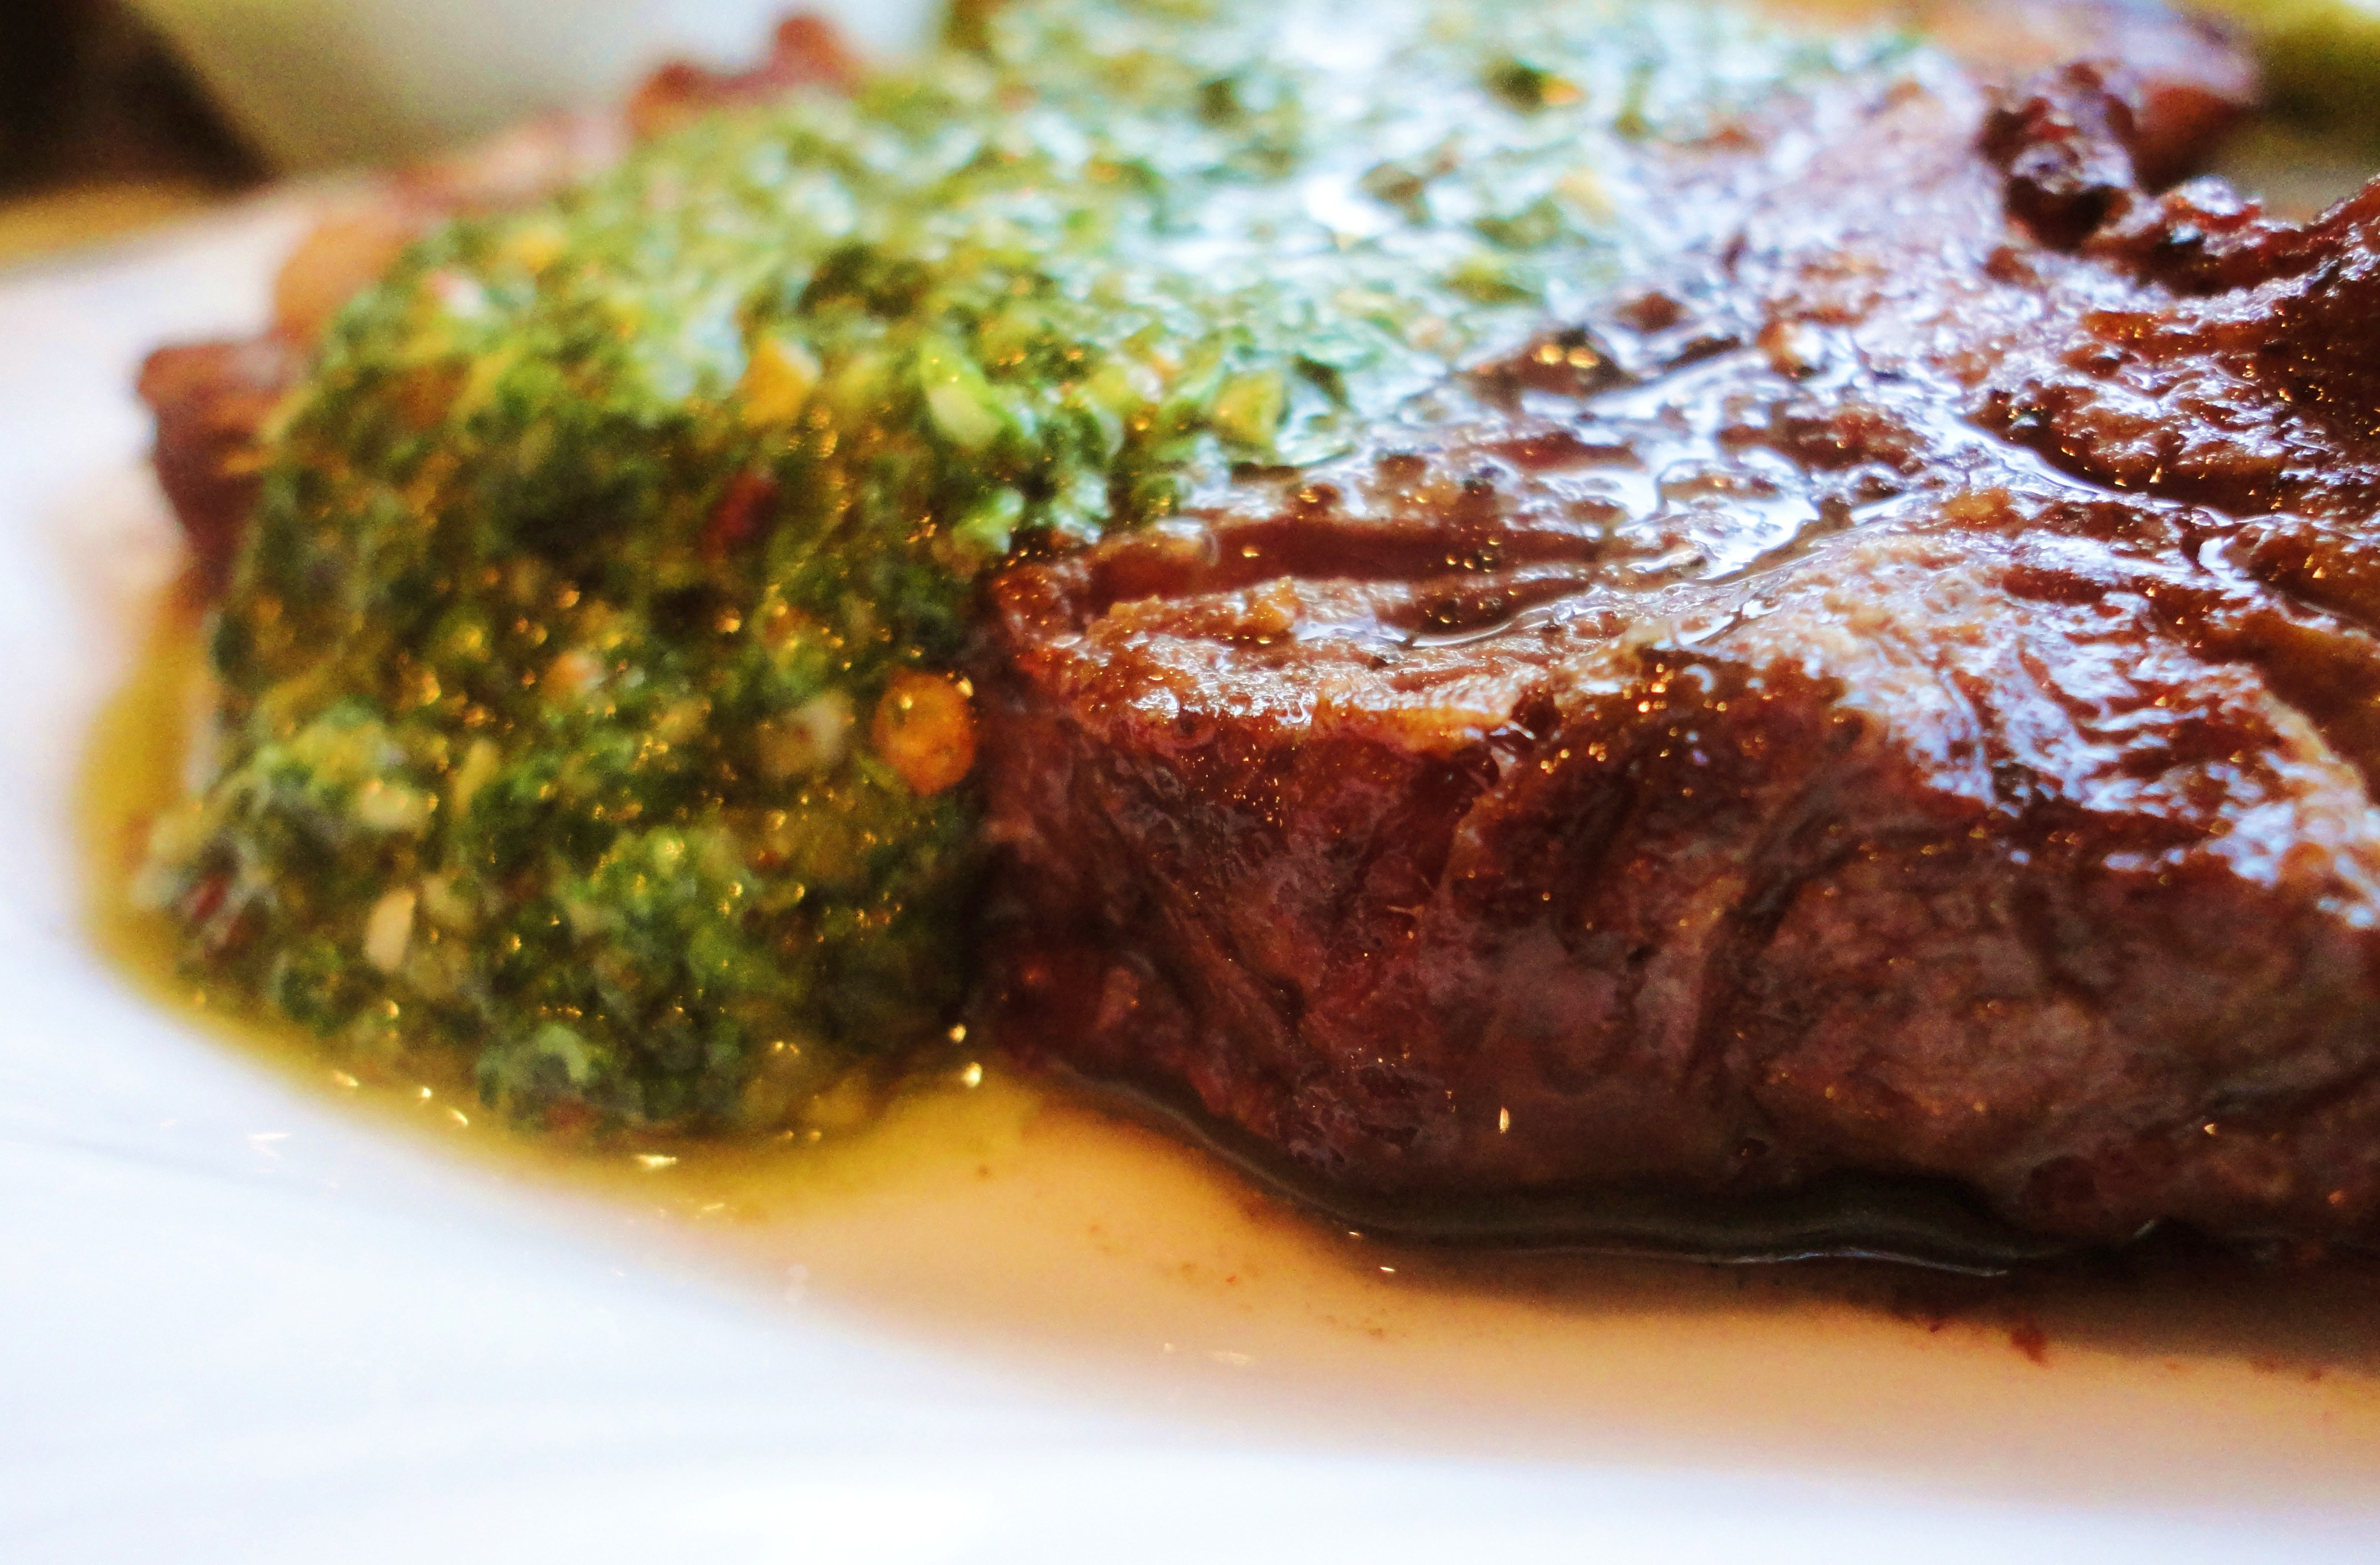 ... grilled tender hanger steak smothered in vibrant tangy cilantro mint